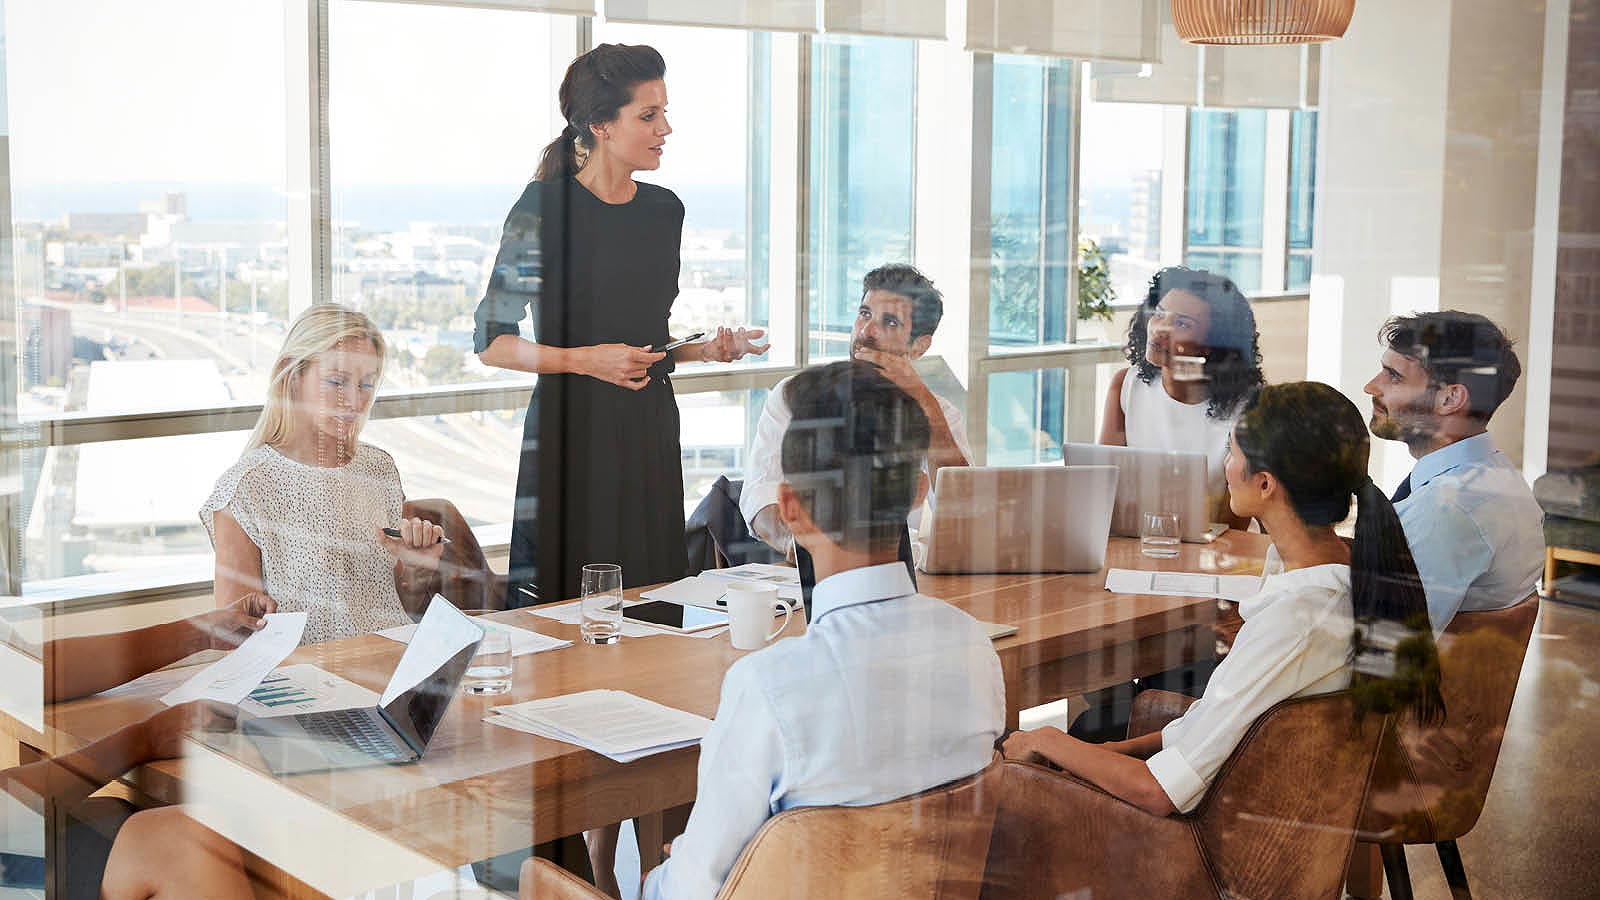 Orientation Session taking place at a conference room table